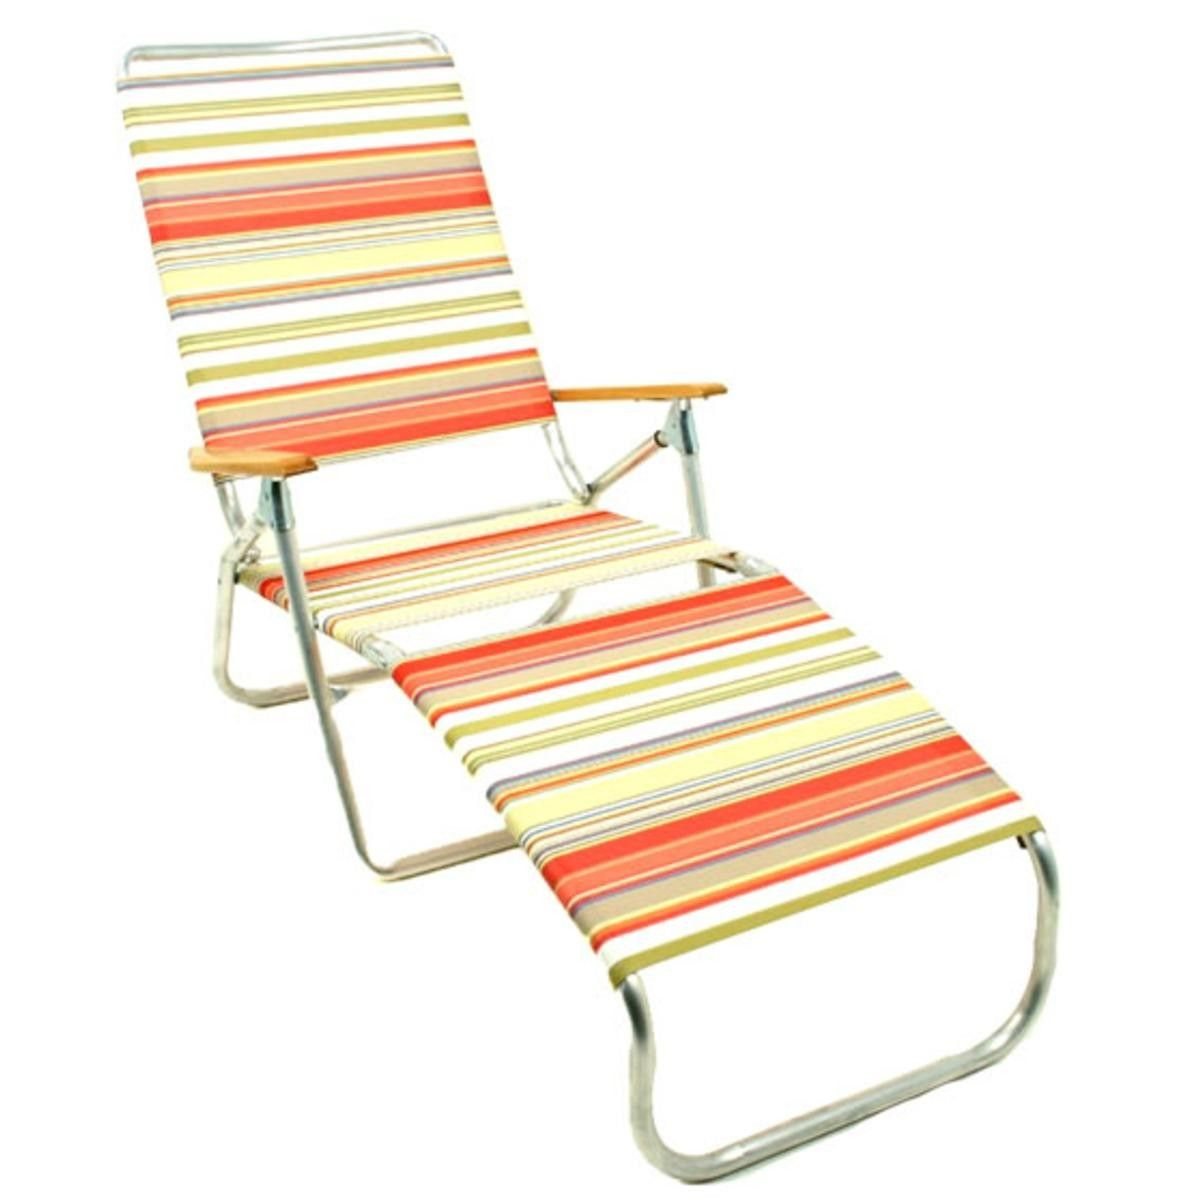 recliner patio folding aluminum chairs chaise sundale beach deluxe lounge outdoor yard pool chair